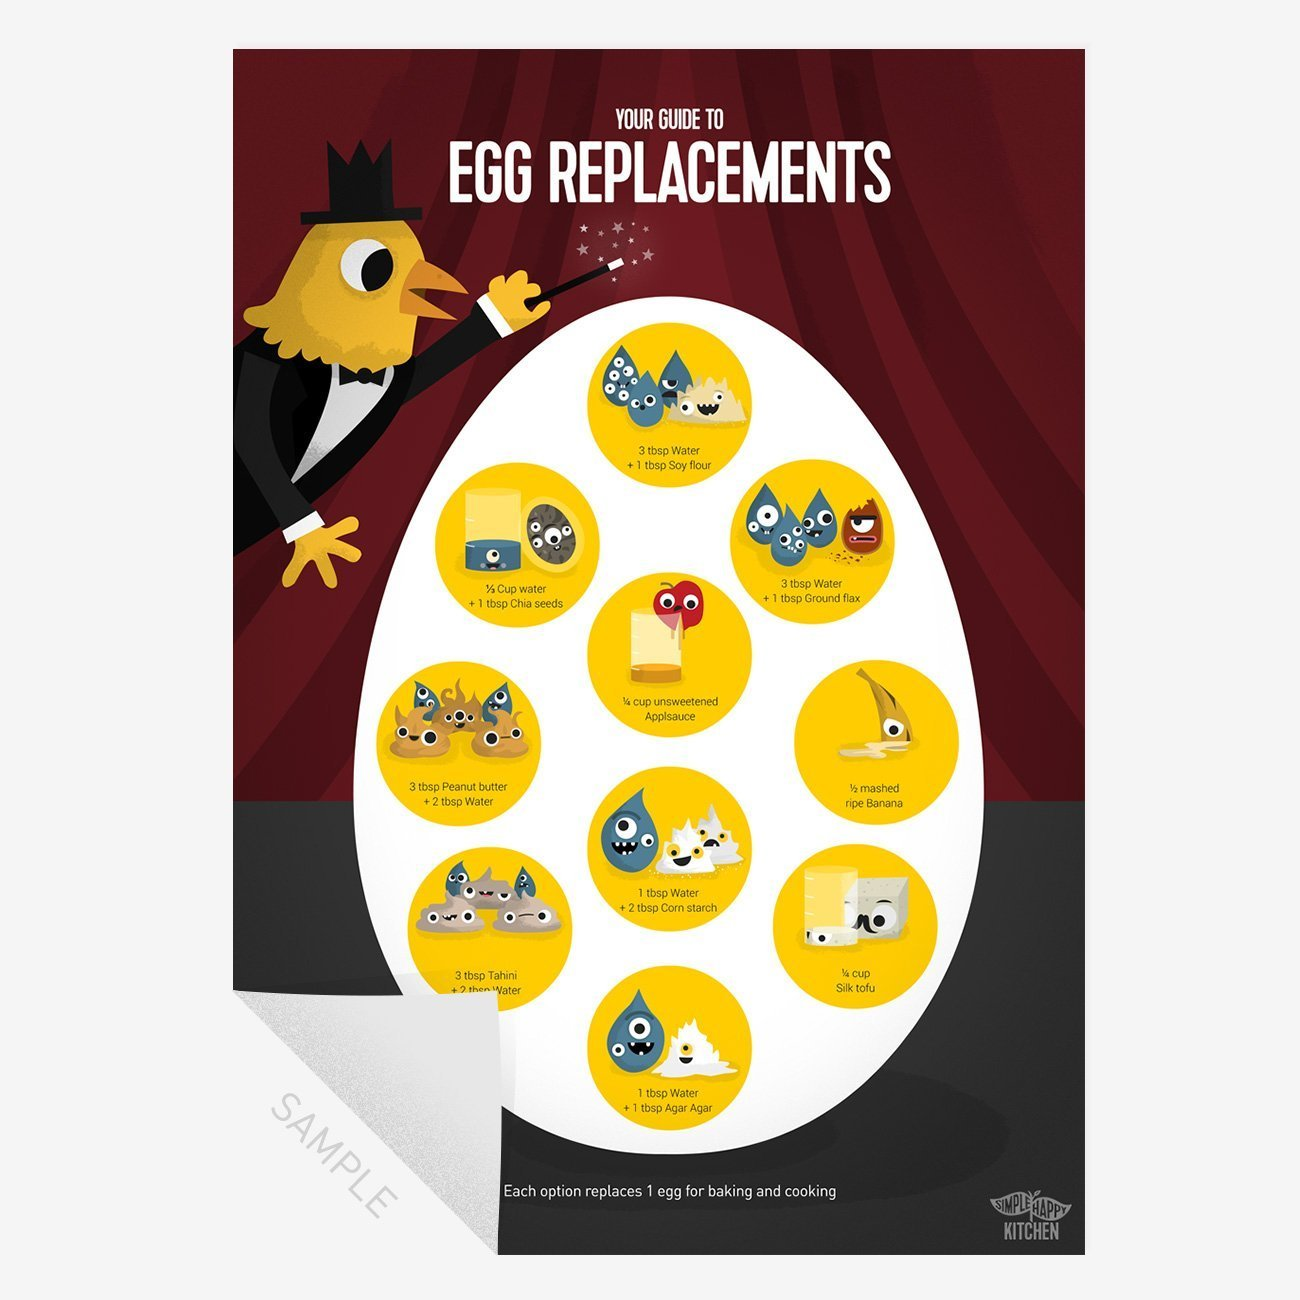 Egg Replacements Guide - Print